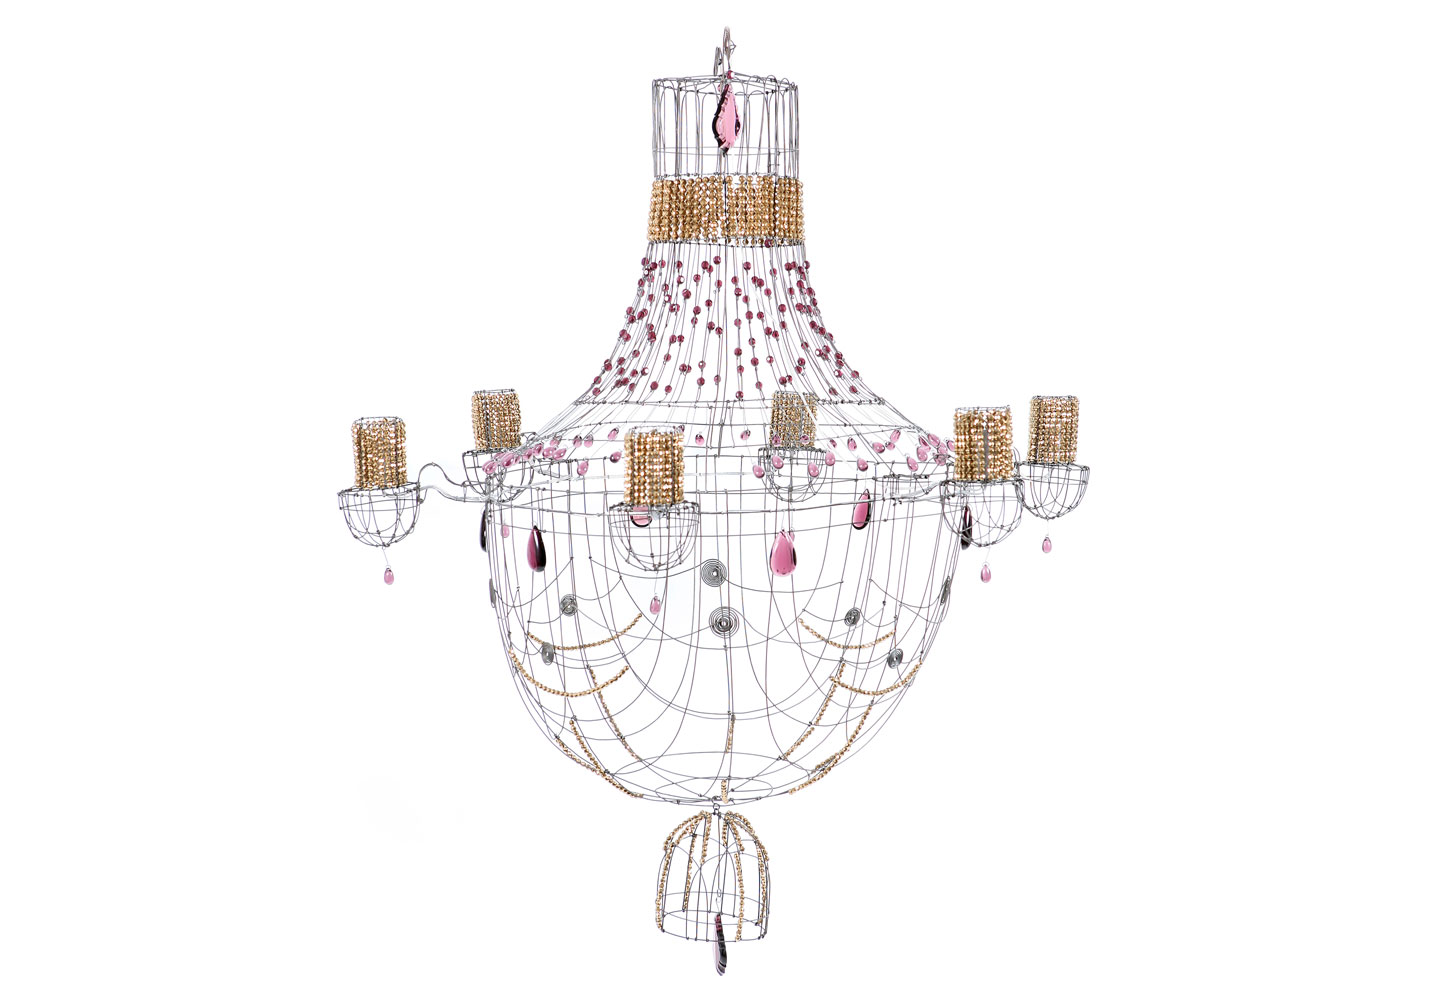 patio chandelier collection exceptionnel sculptures de fil de fer et de 27 shabby chic. Black Bedroom Furniture Sets. Home Design Ideas